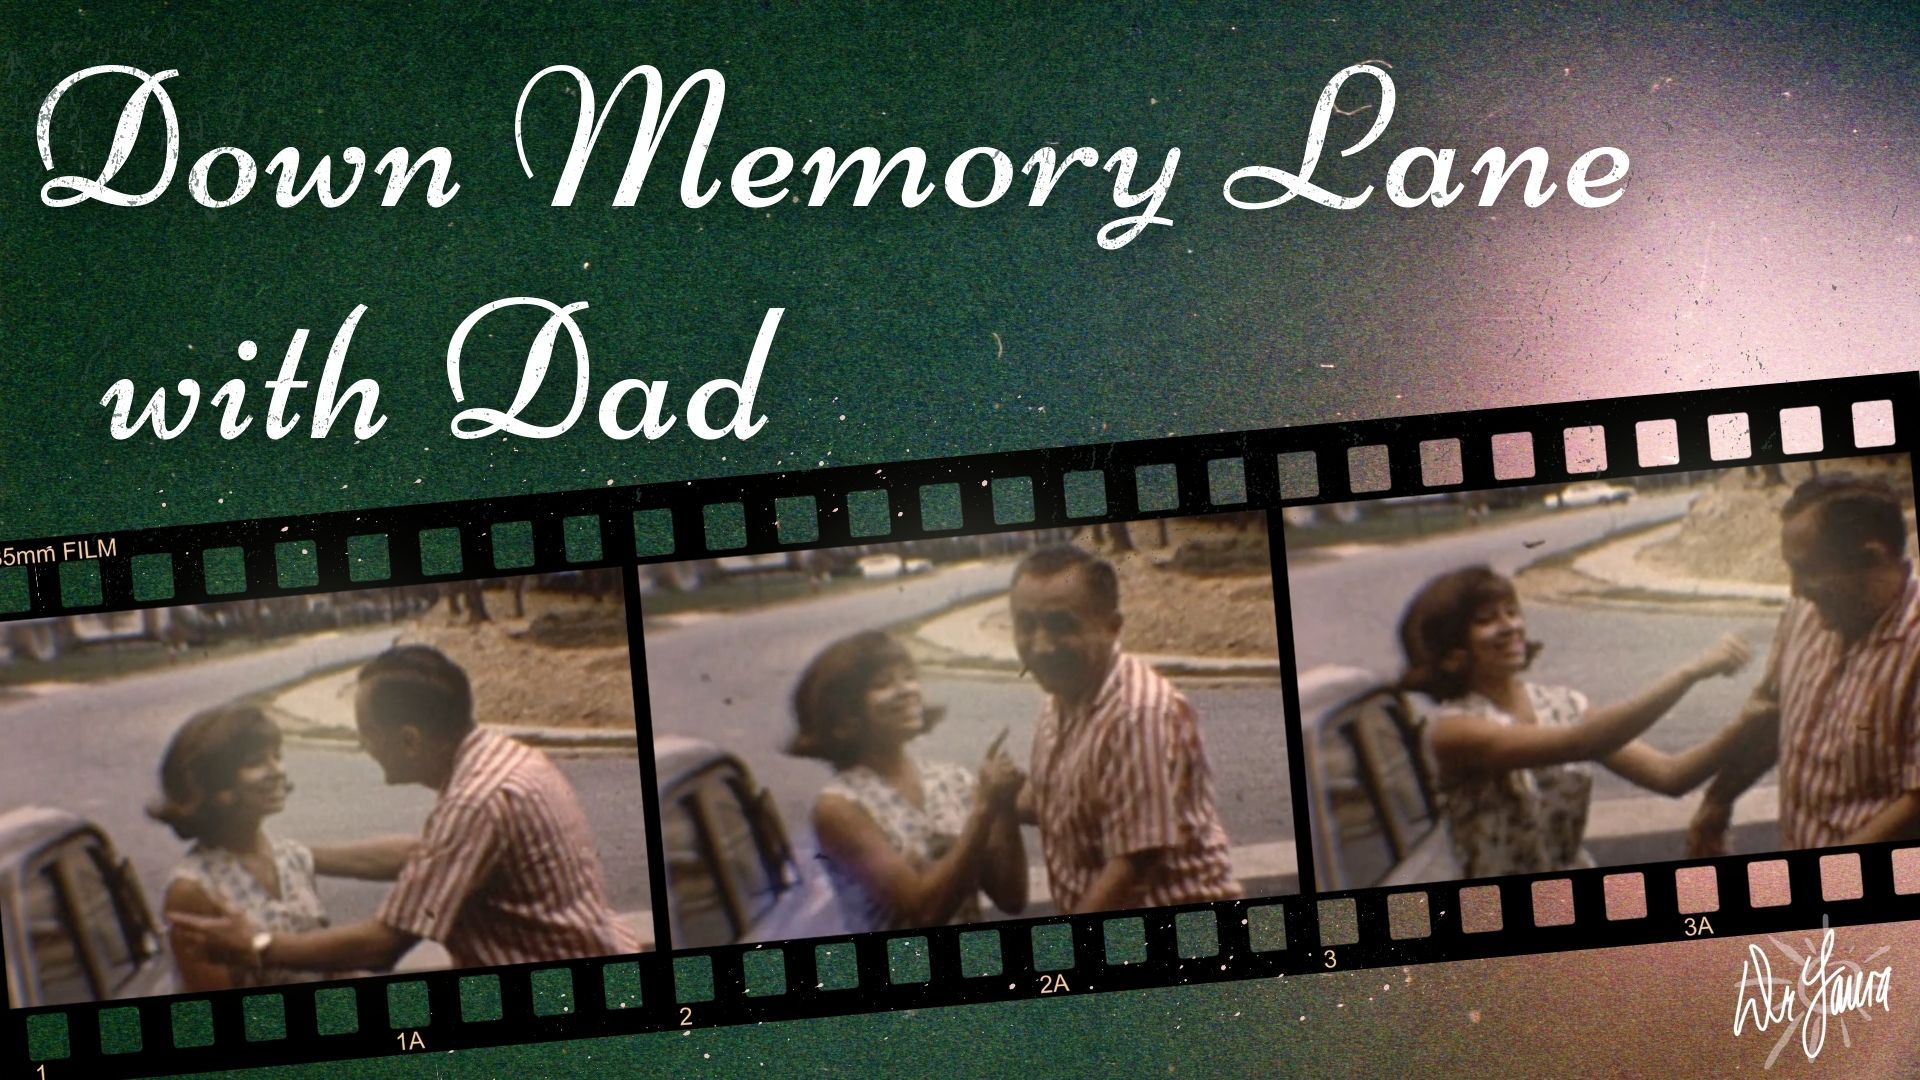 YouTube: Down Memory Lane with Dad